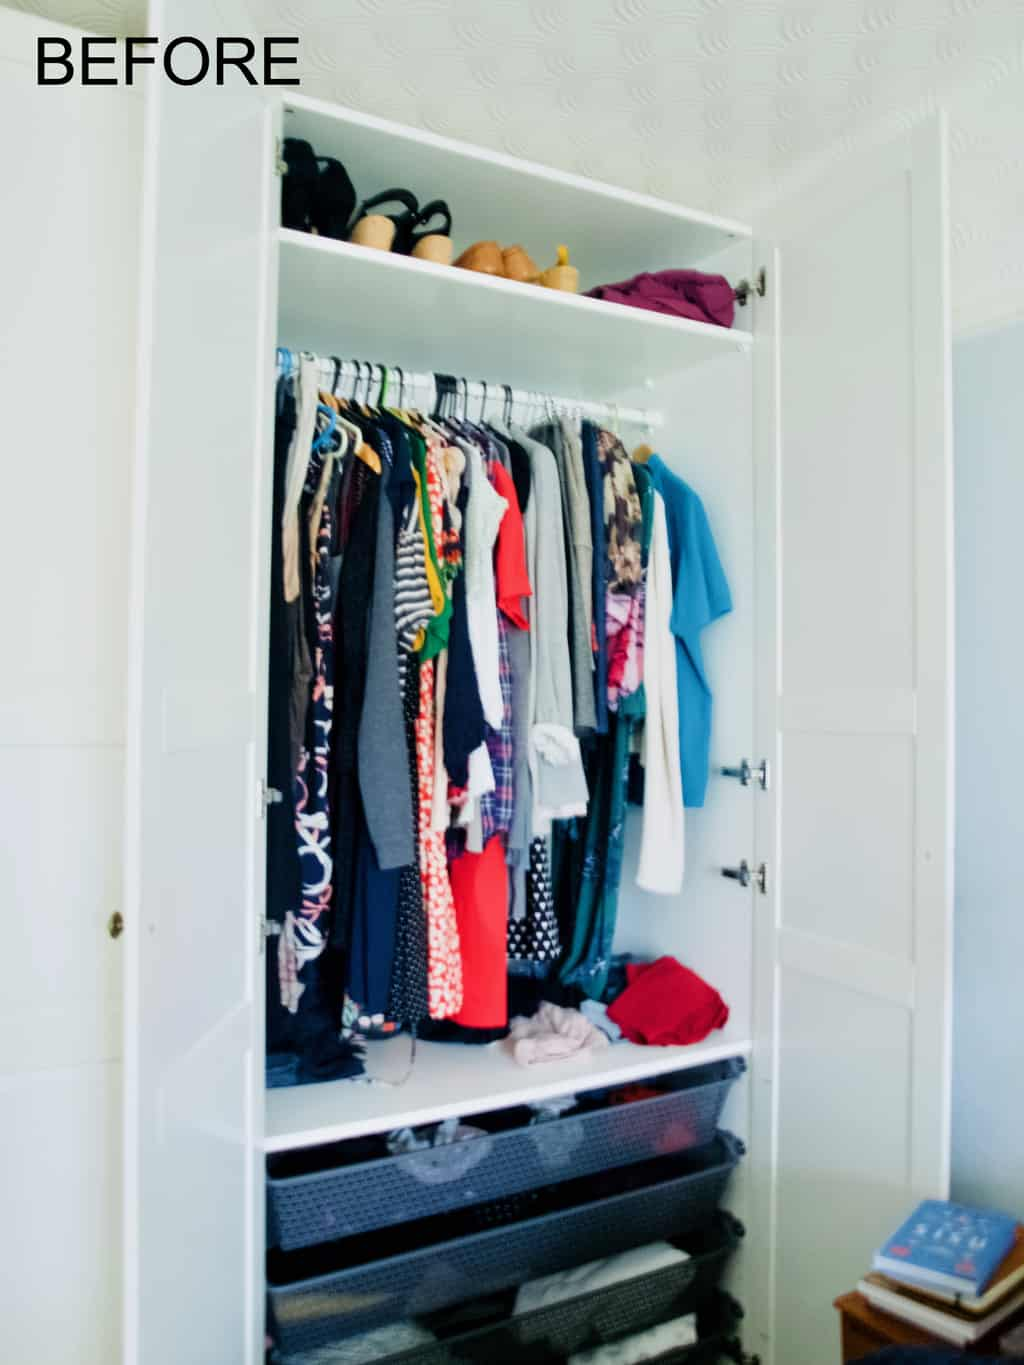 How I detoxed my wardrobe